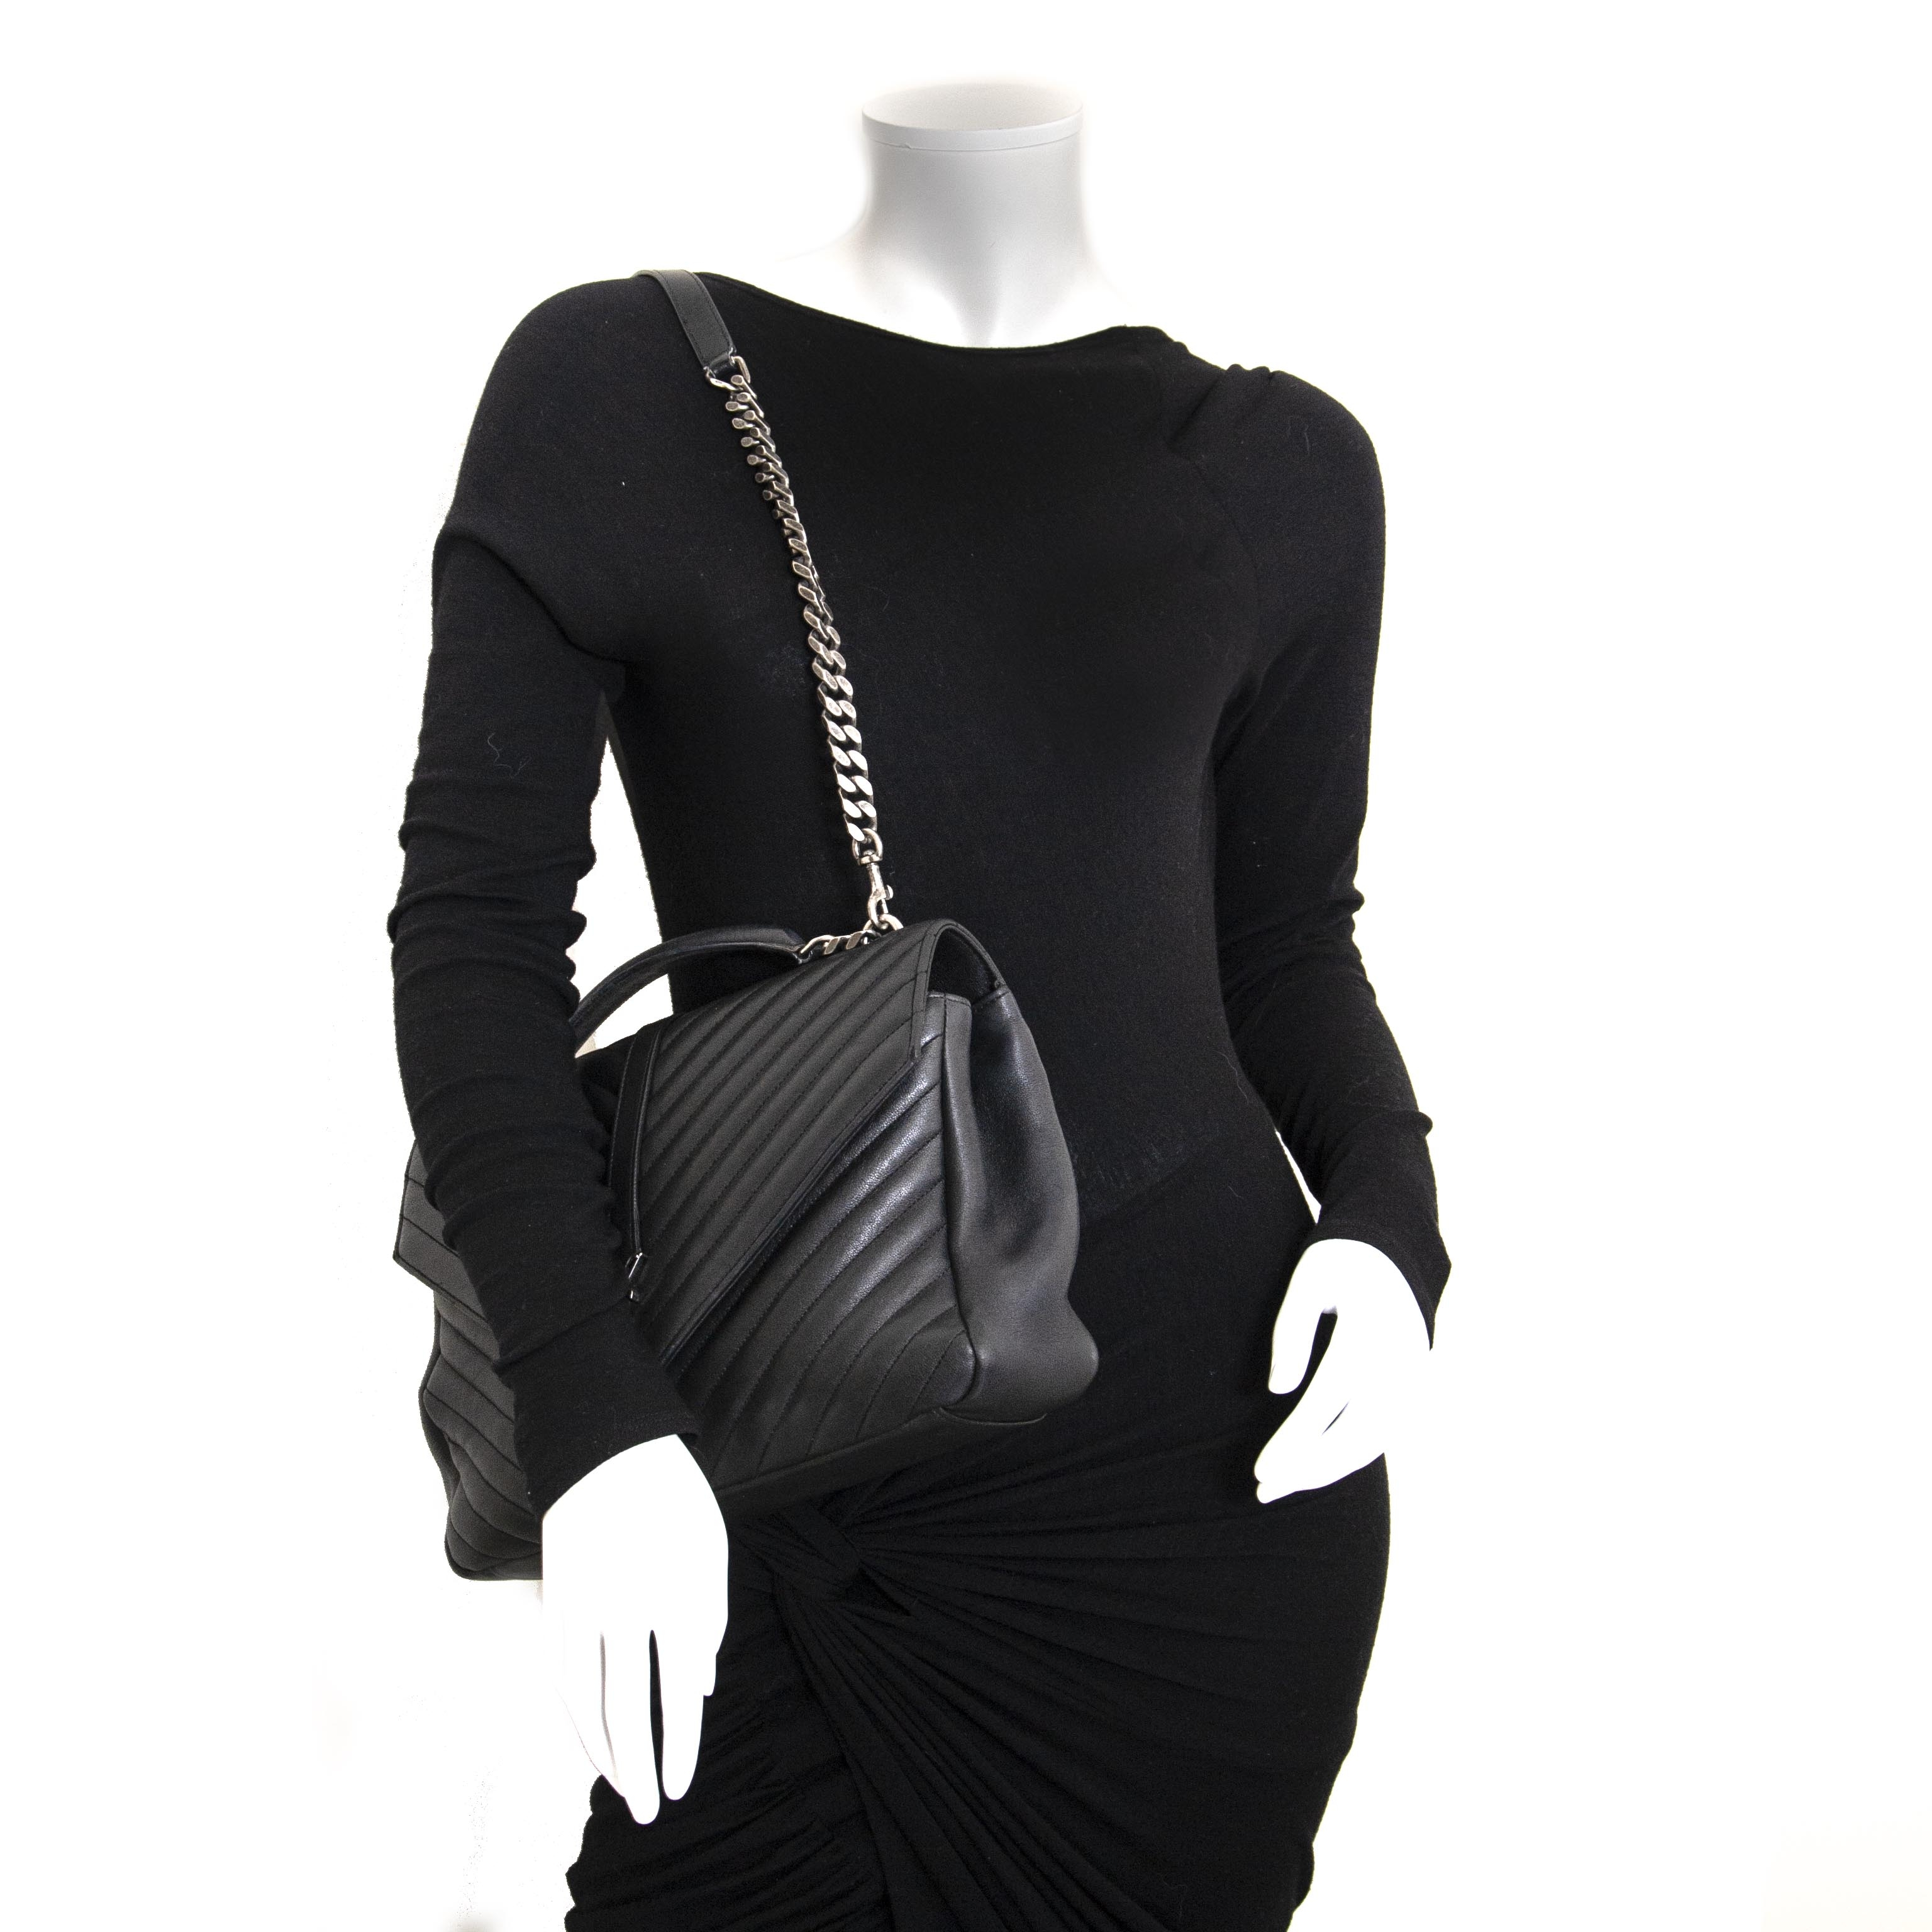 3df5b07852e Labellov Shoulder - Bags ○ Buy and Sell Authentic Luxury